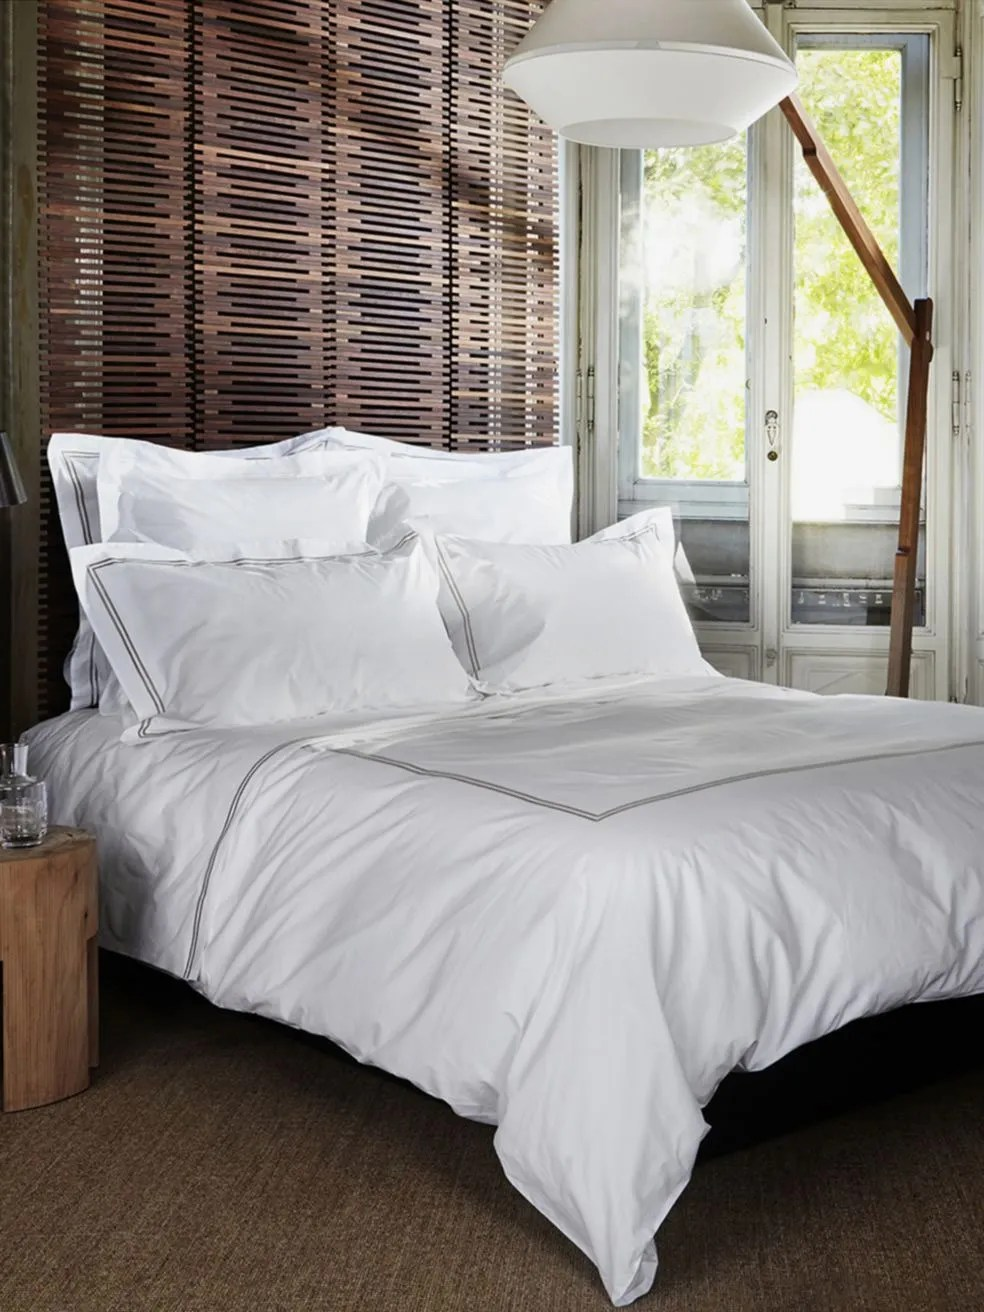 Best Duvet Cover Duvet According To Interior Designers What Does A Duvet Cover Look Like What Is A Duvet Cover Without Comforter houzz 01 Whats A Duvet Cover